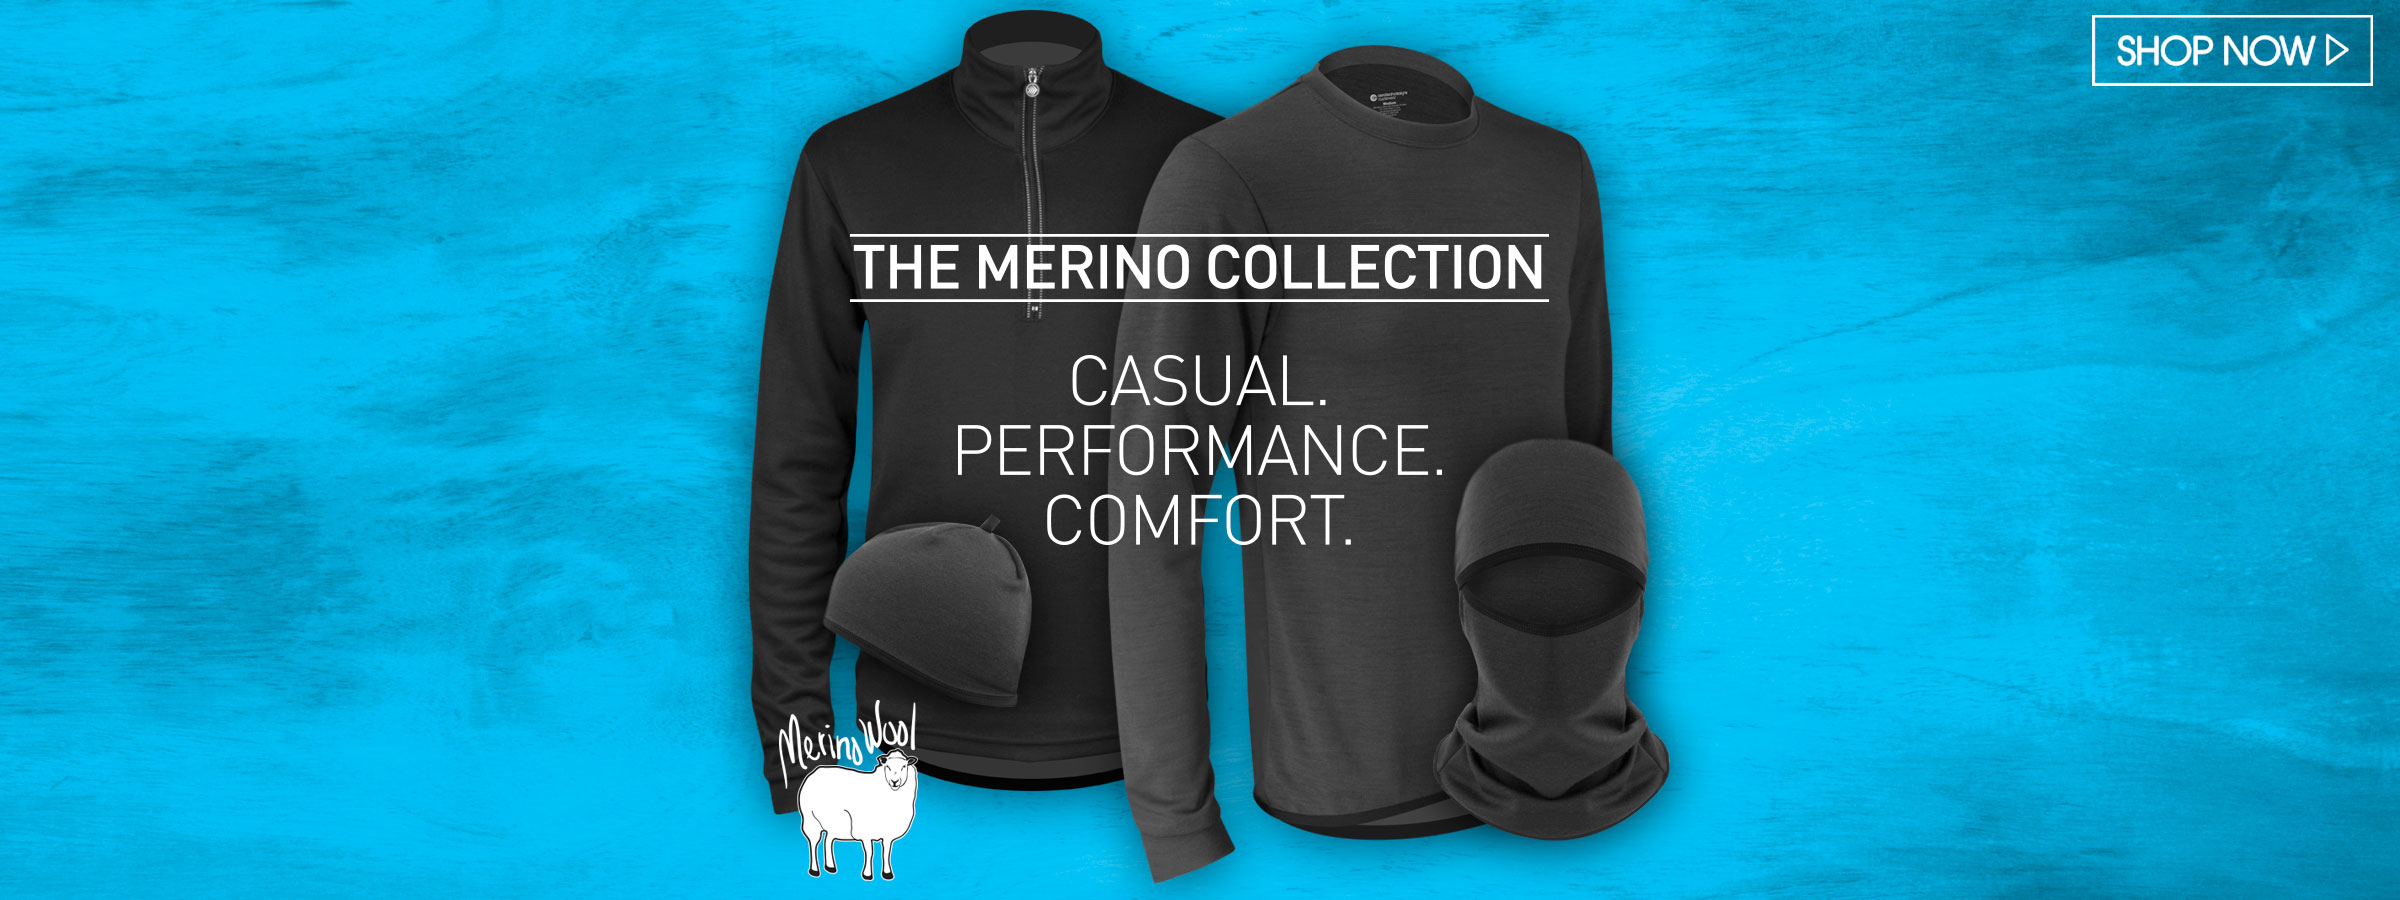 merino wool cycling apparel